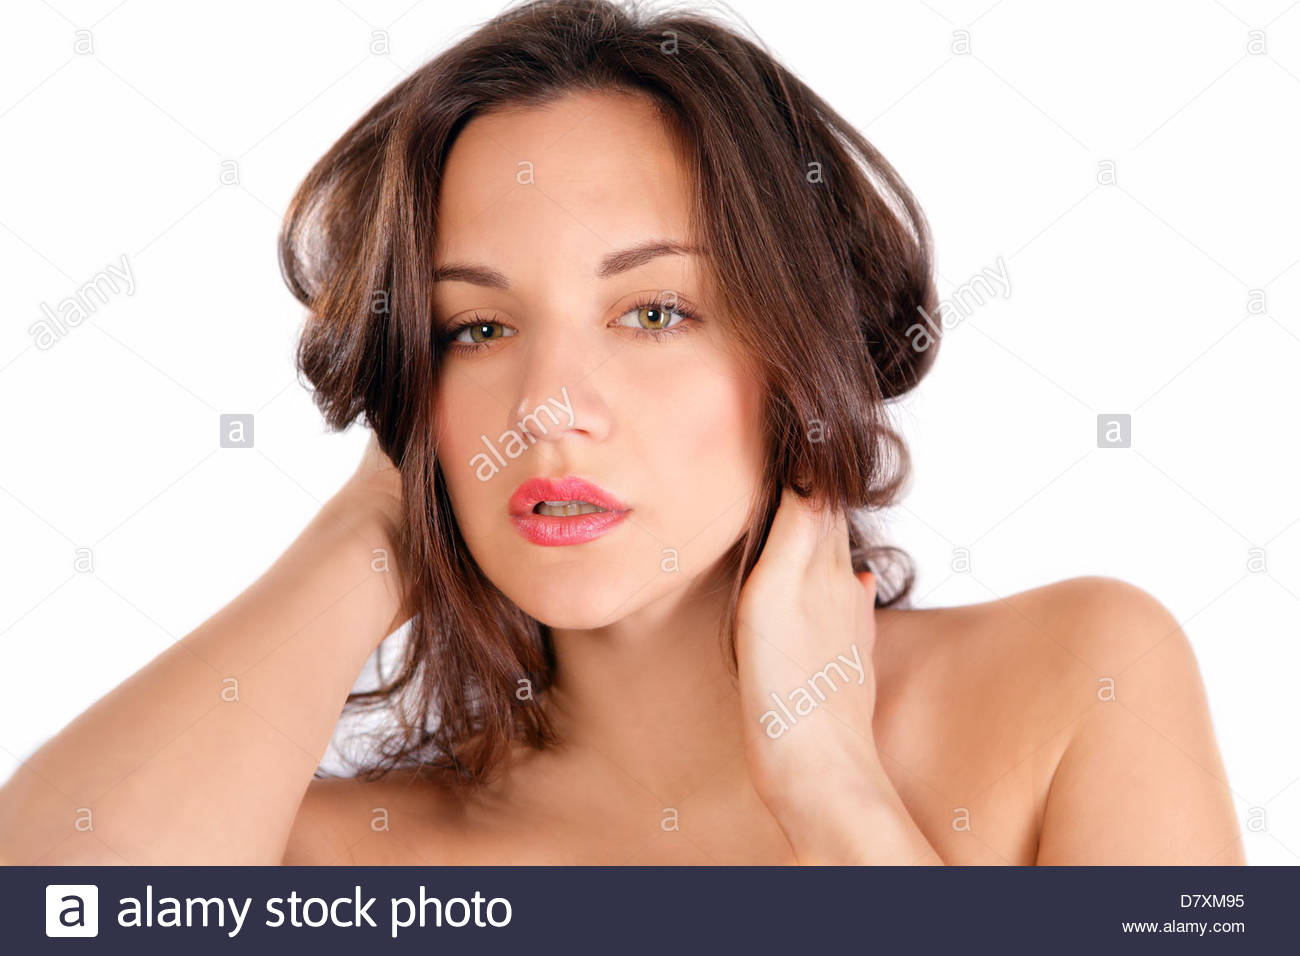 Hair care woman - Stock Image